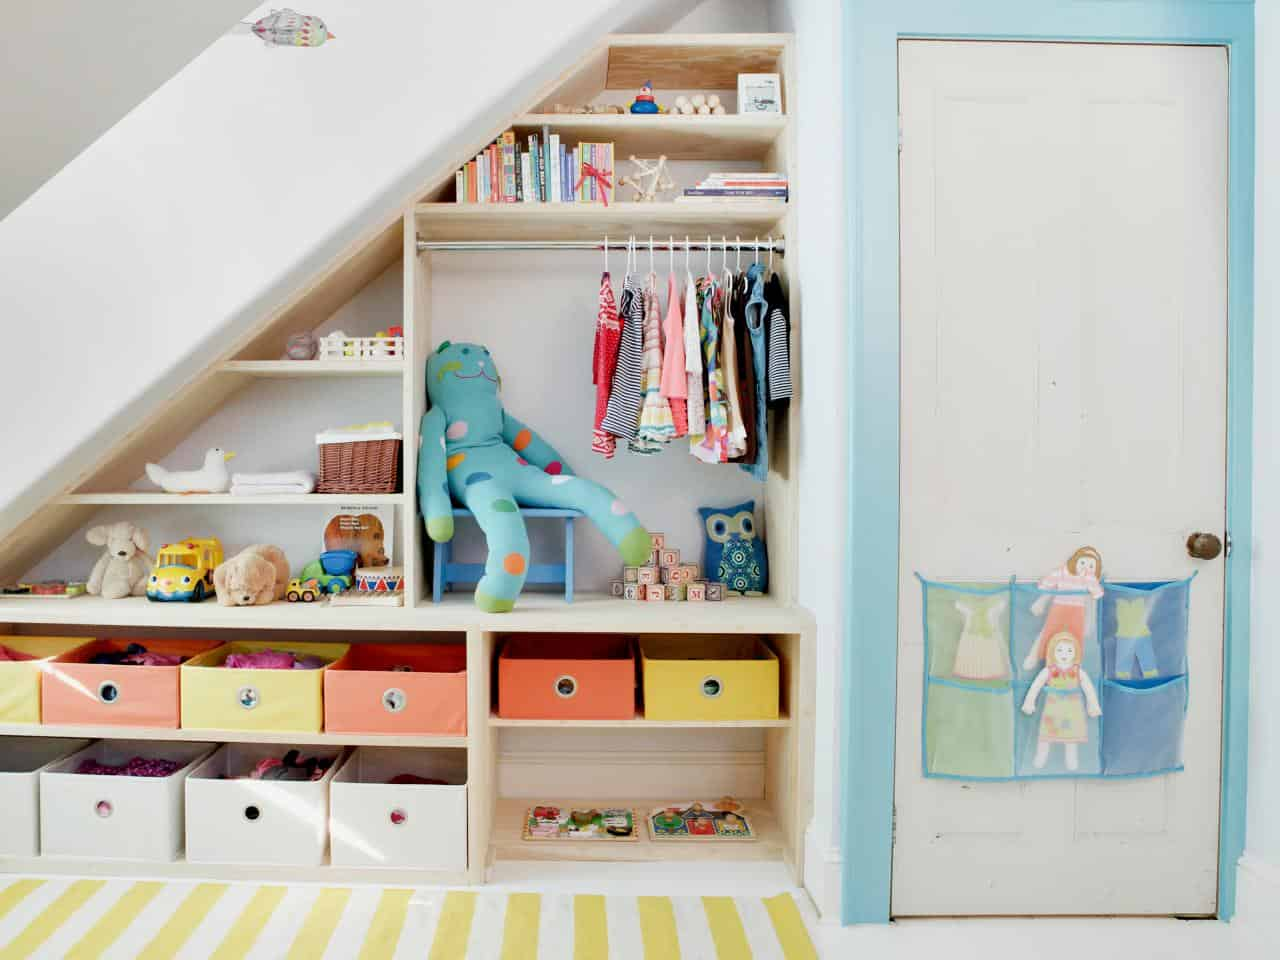 Storage shelves under the stairs